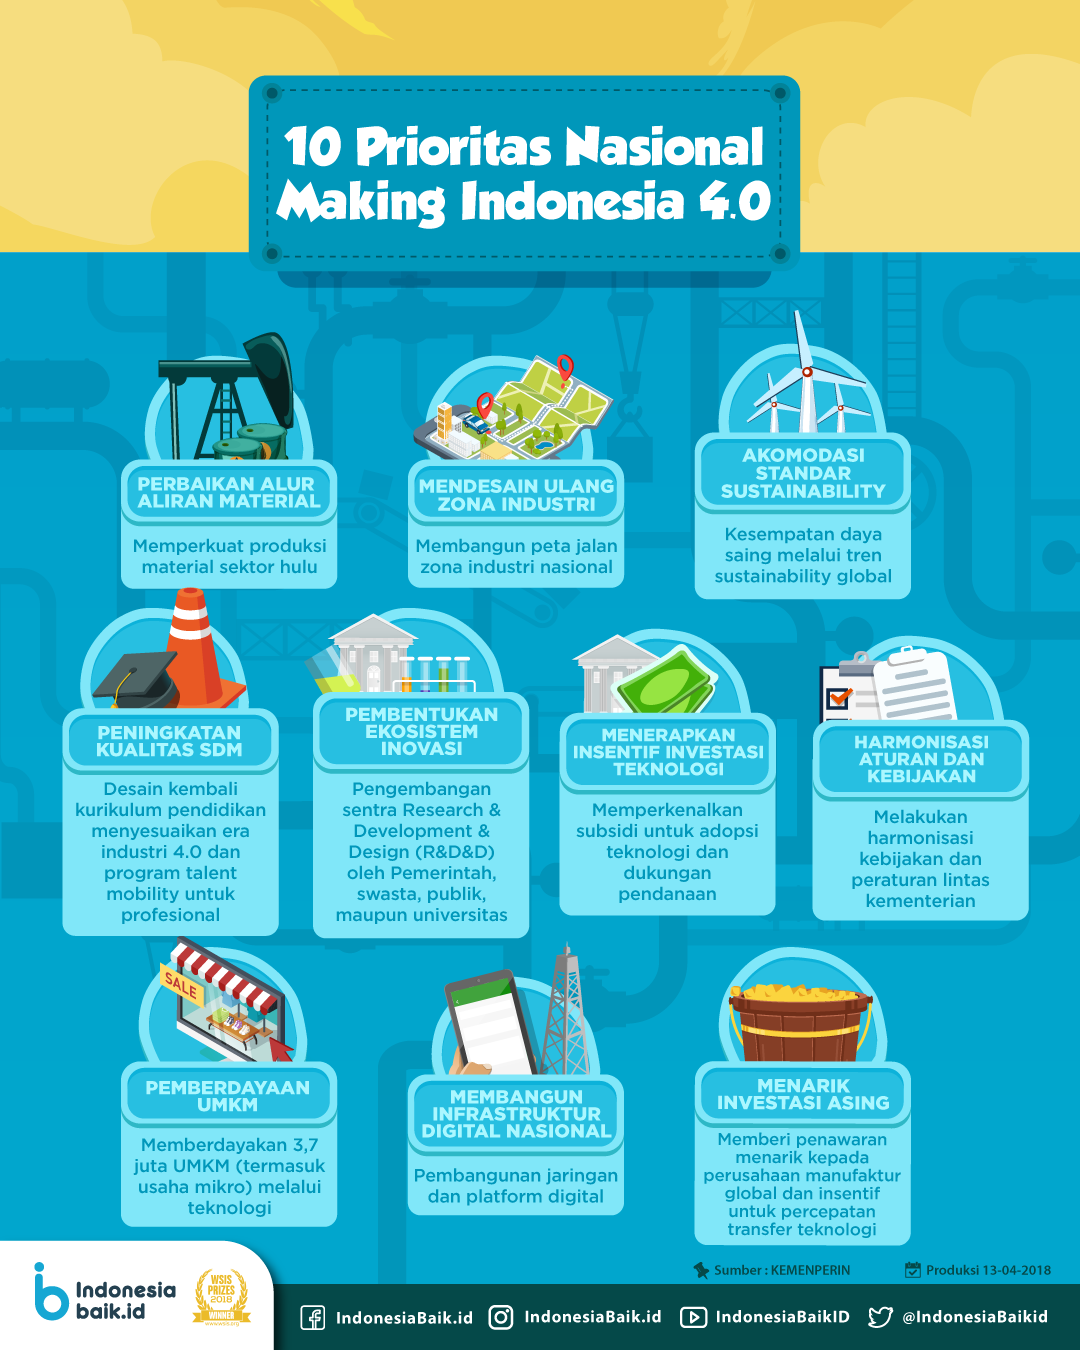 10 Prioritas Nasional: Making Indonesia 4.0